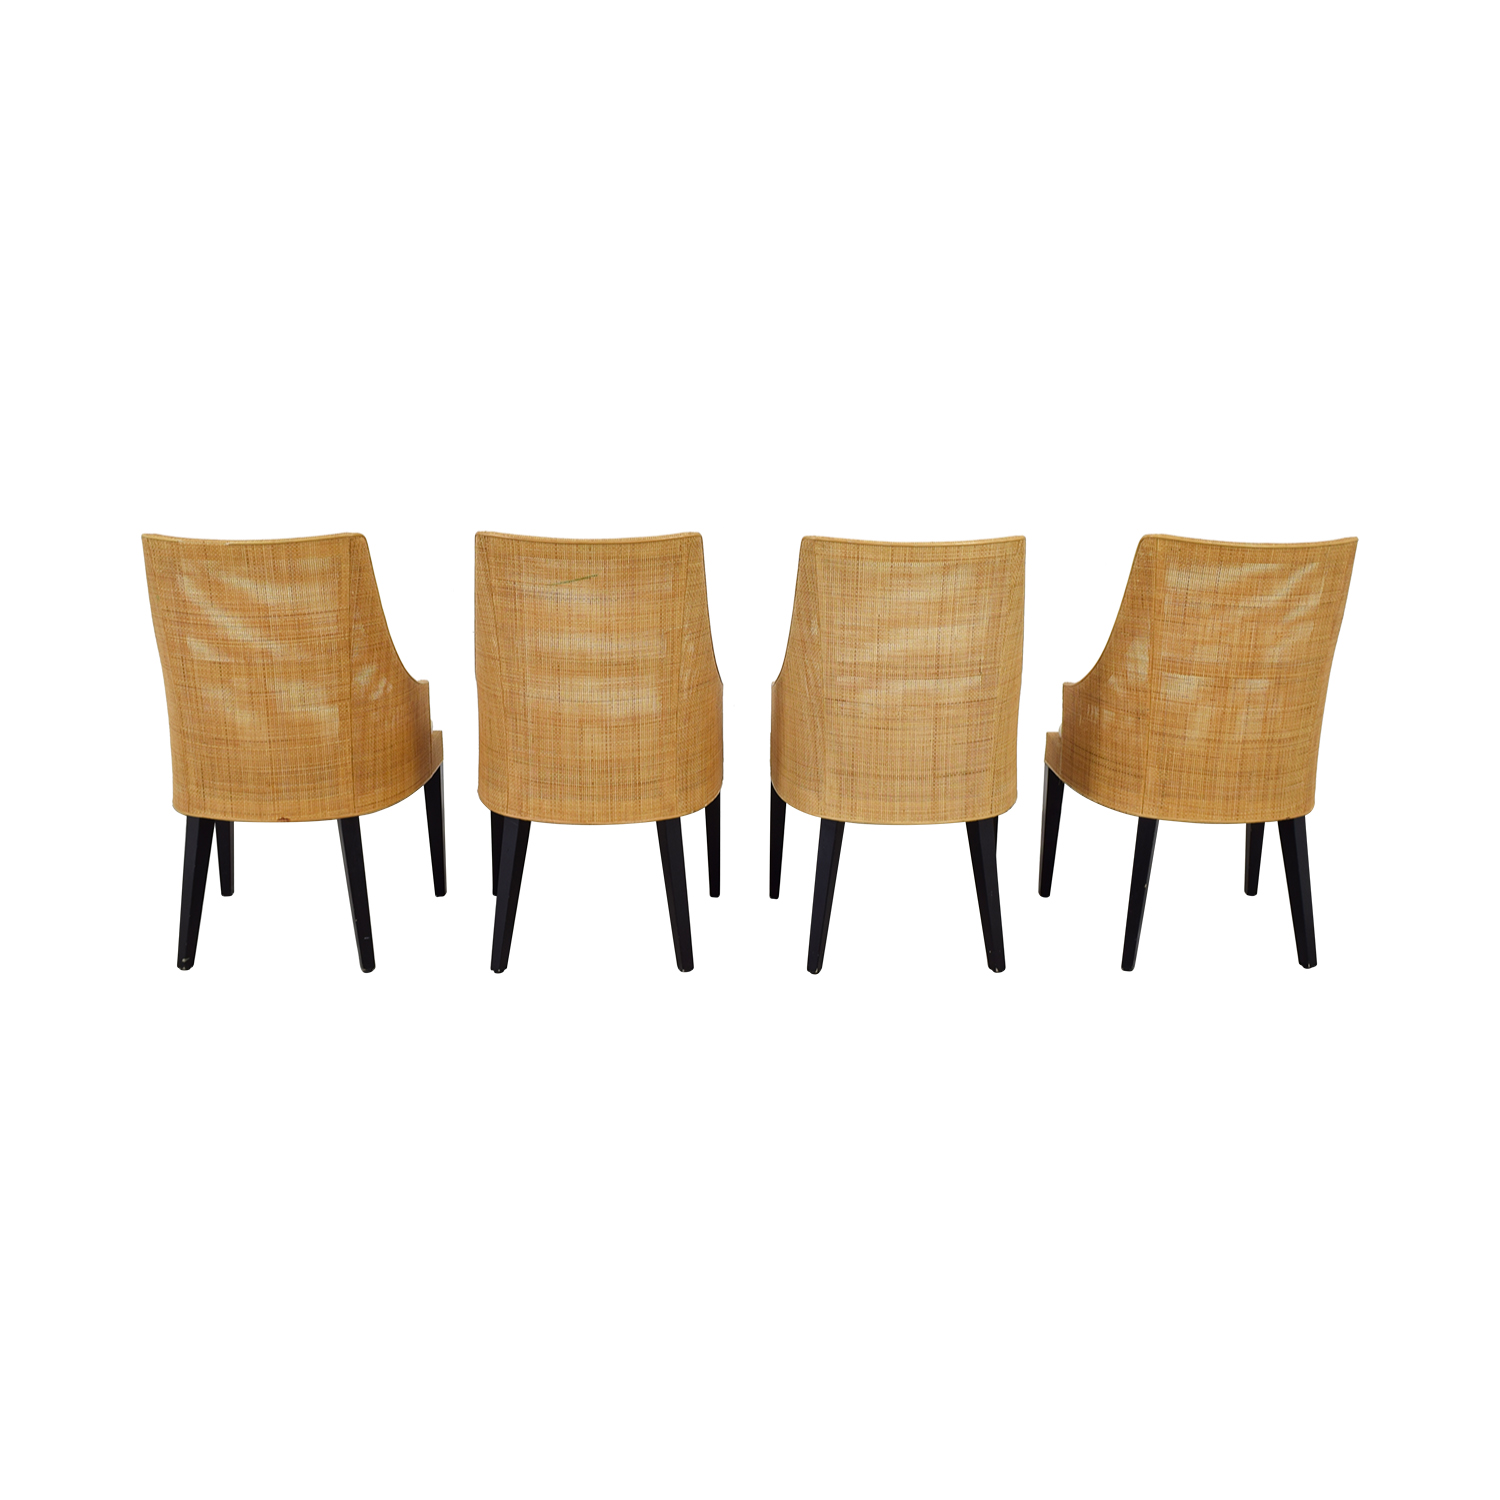 West Elm West Elm Beige and Tan Dining Chairs second hand